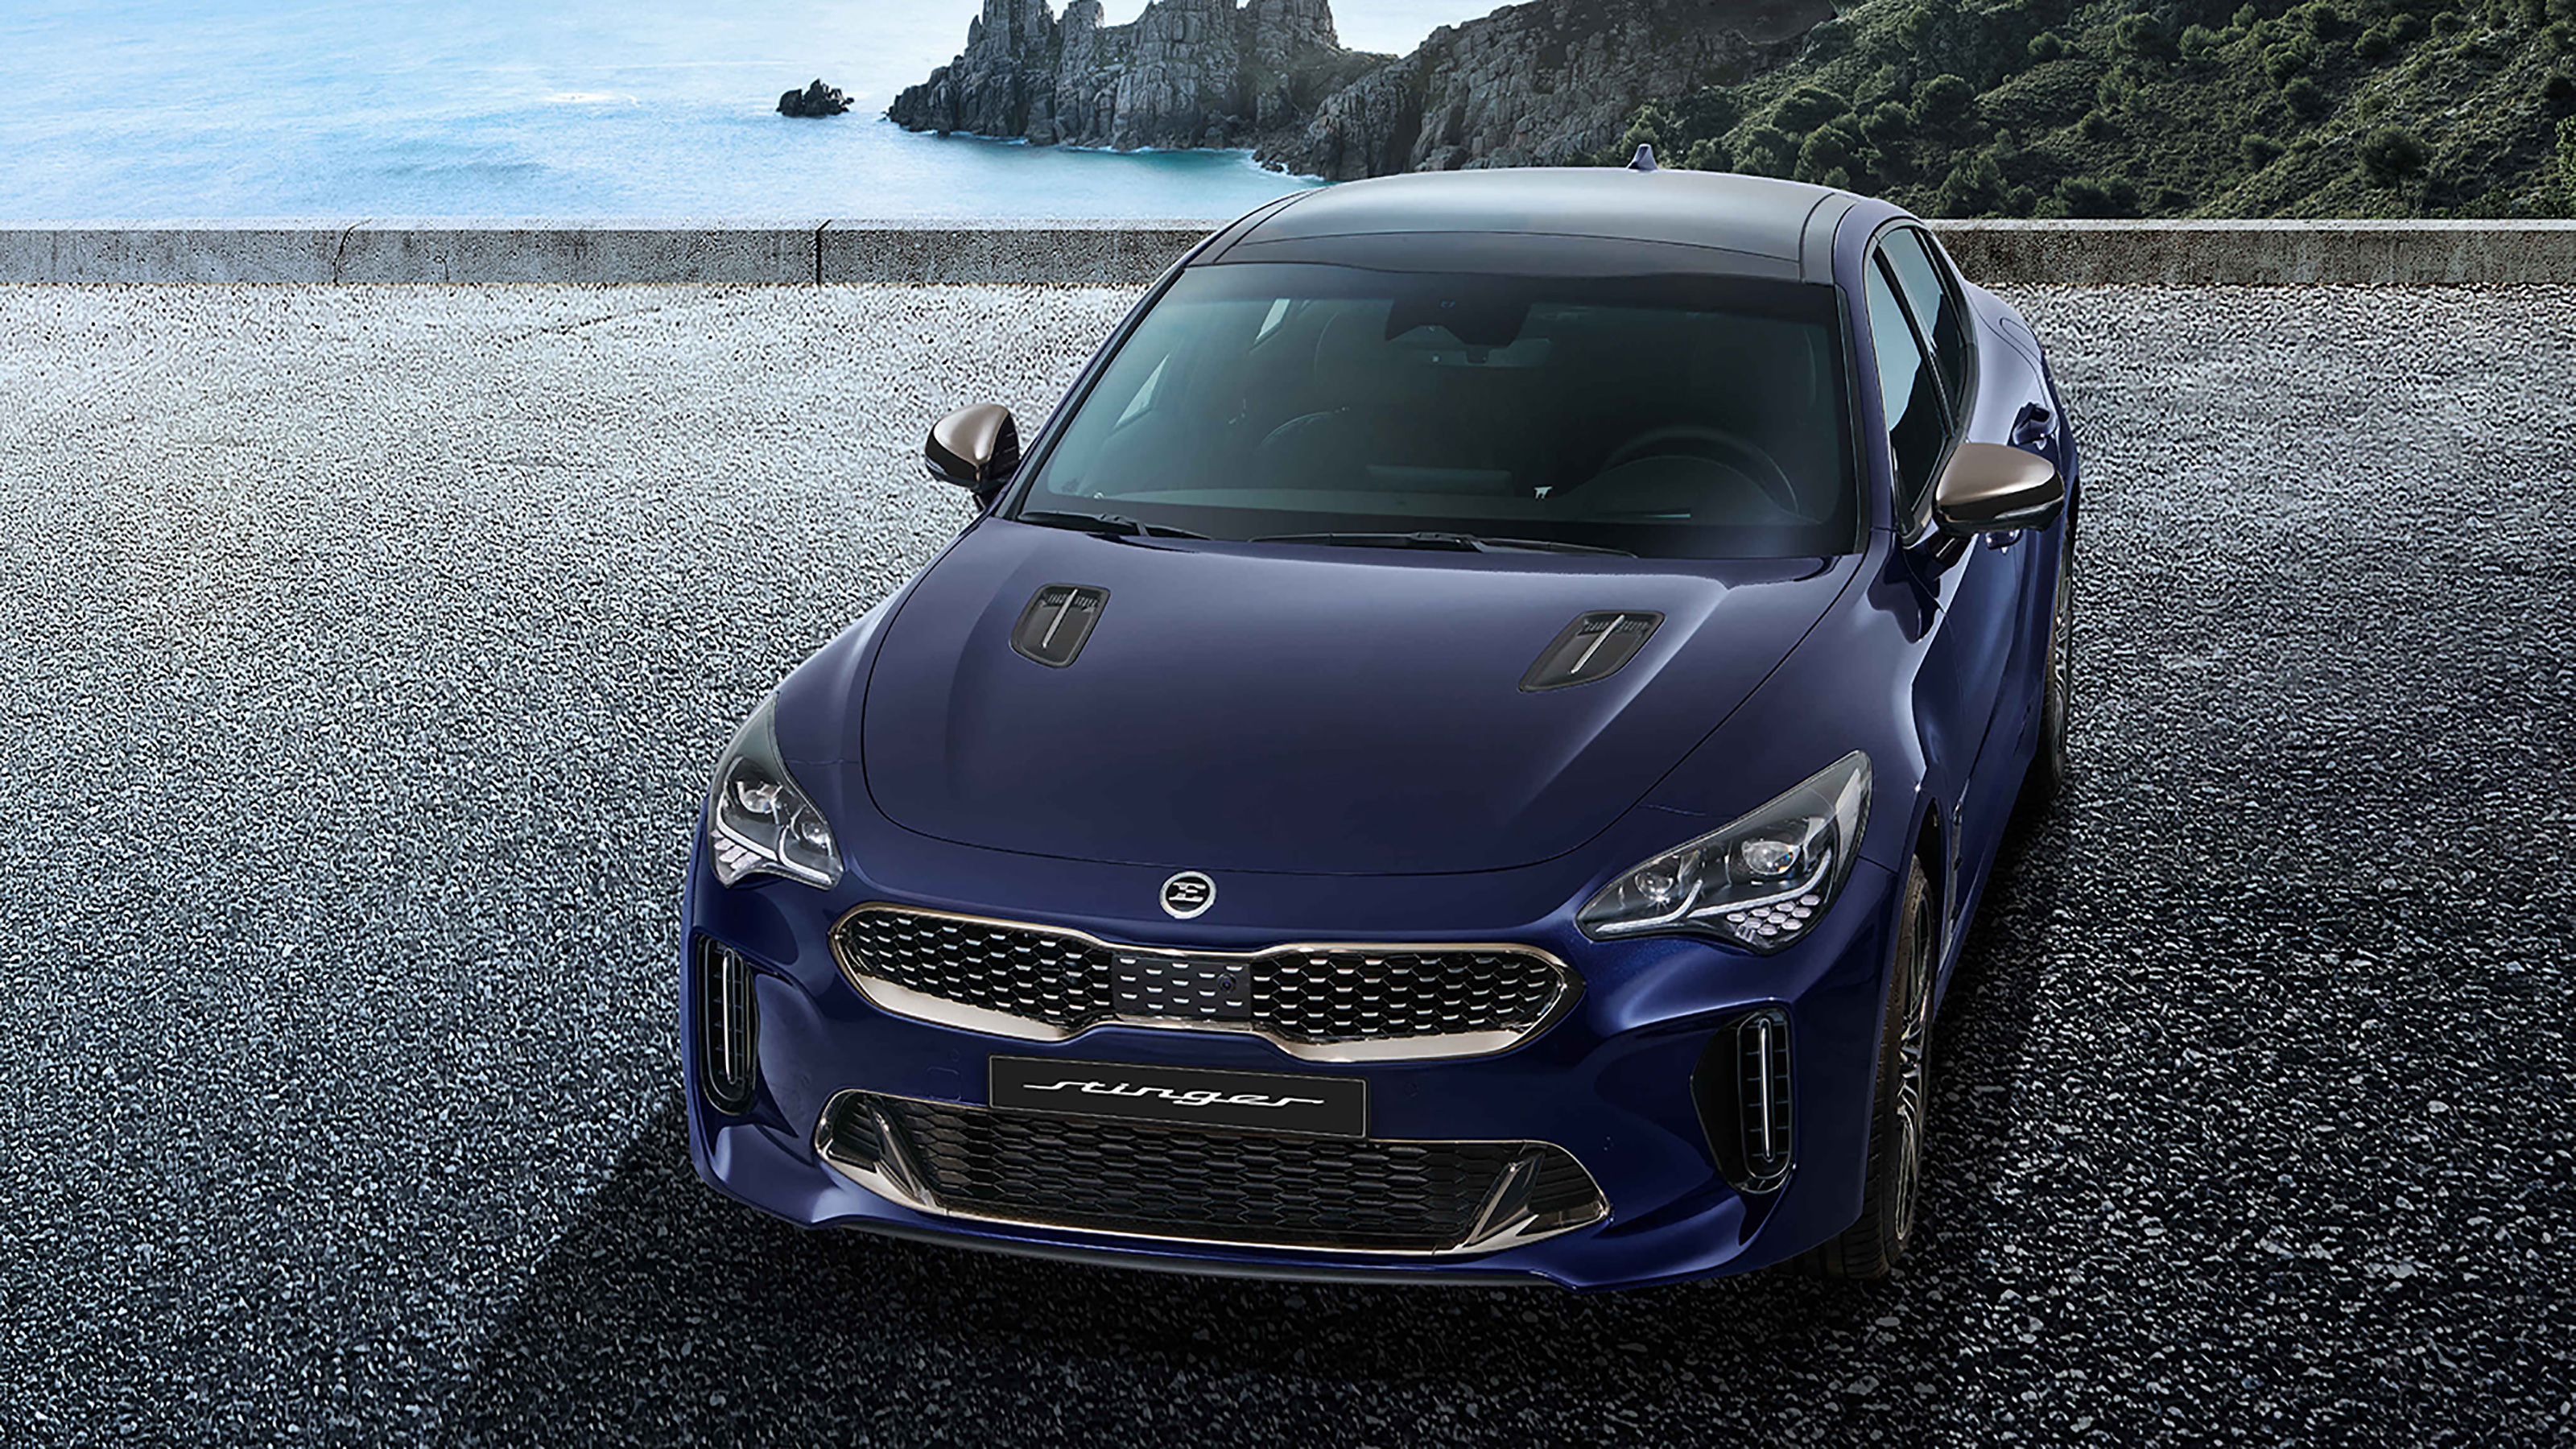 new 2021 kia stinger facelift revealed with new look and